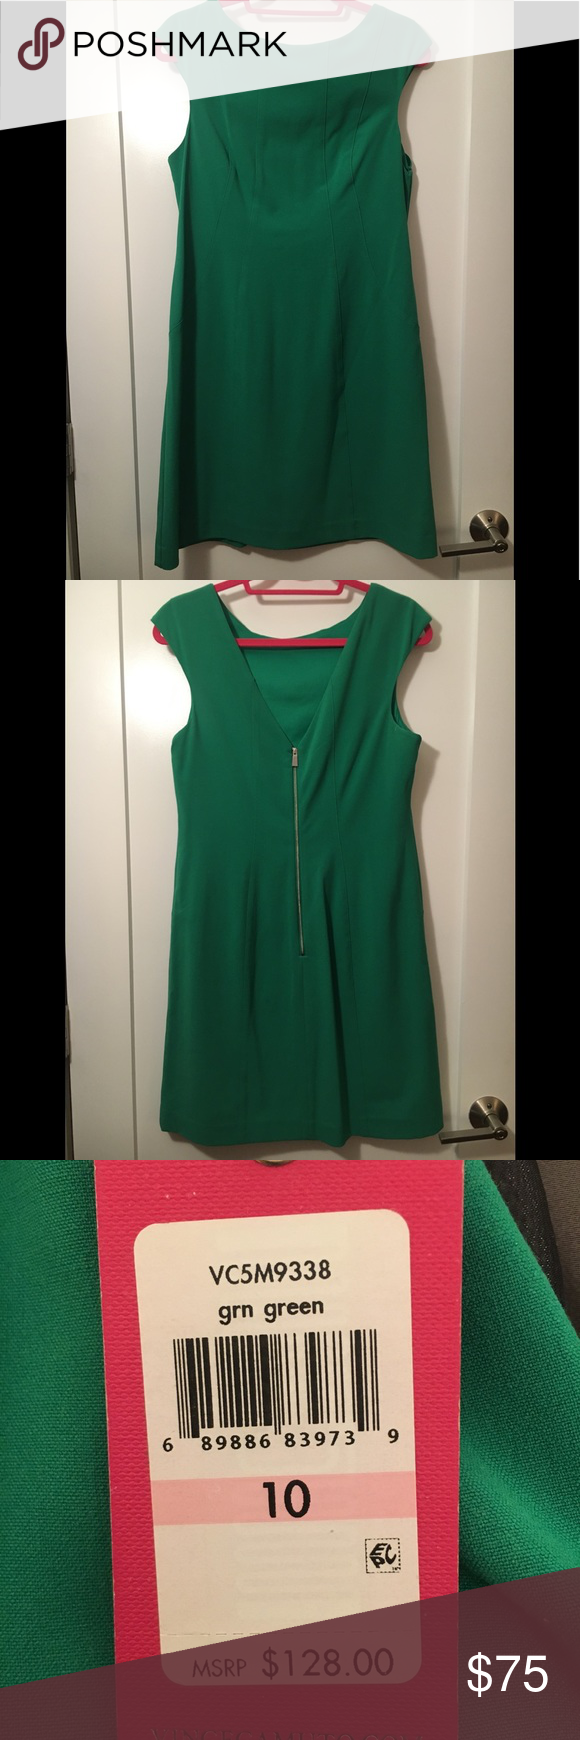 Nwt Vince Camuto Kelly Green Dress Size 10 Kelly Green Dresses Green Dress Clothes Design [ 1740 x 580 Pixel ]